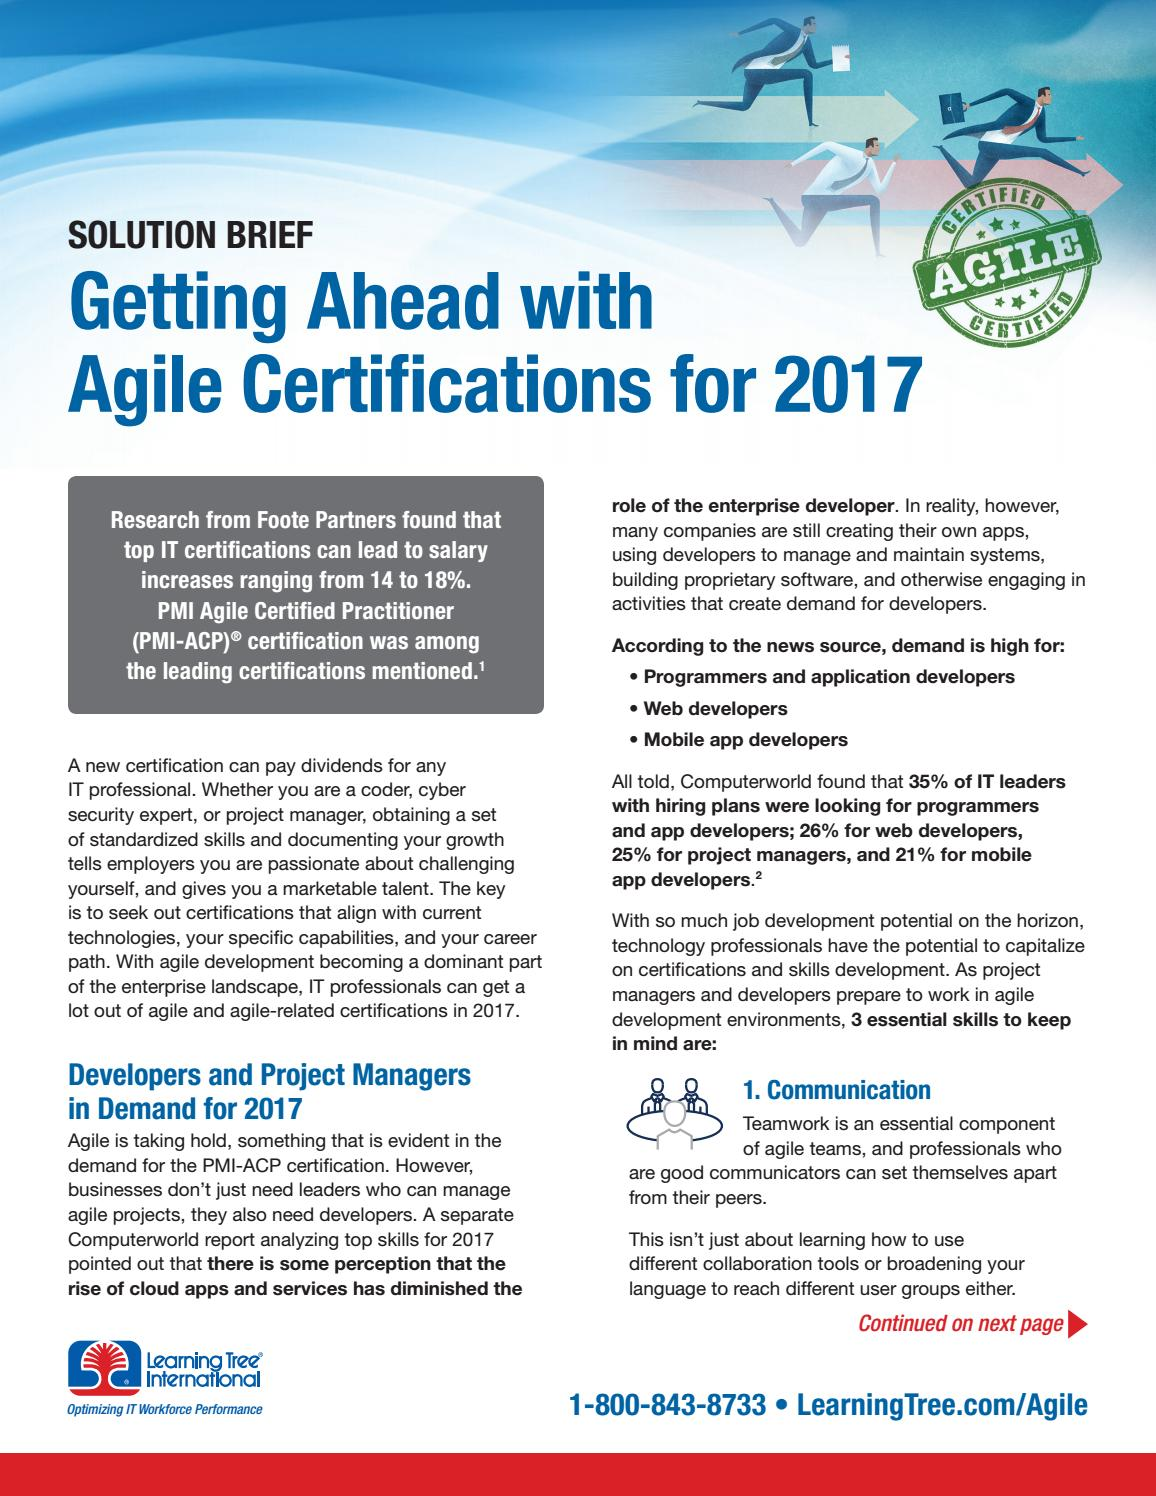 Getting Ahead With Agile Certifications For 2017 By Learningtree